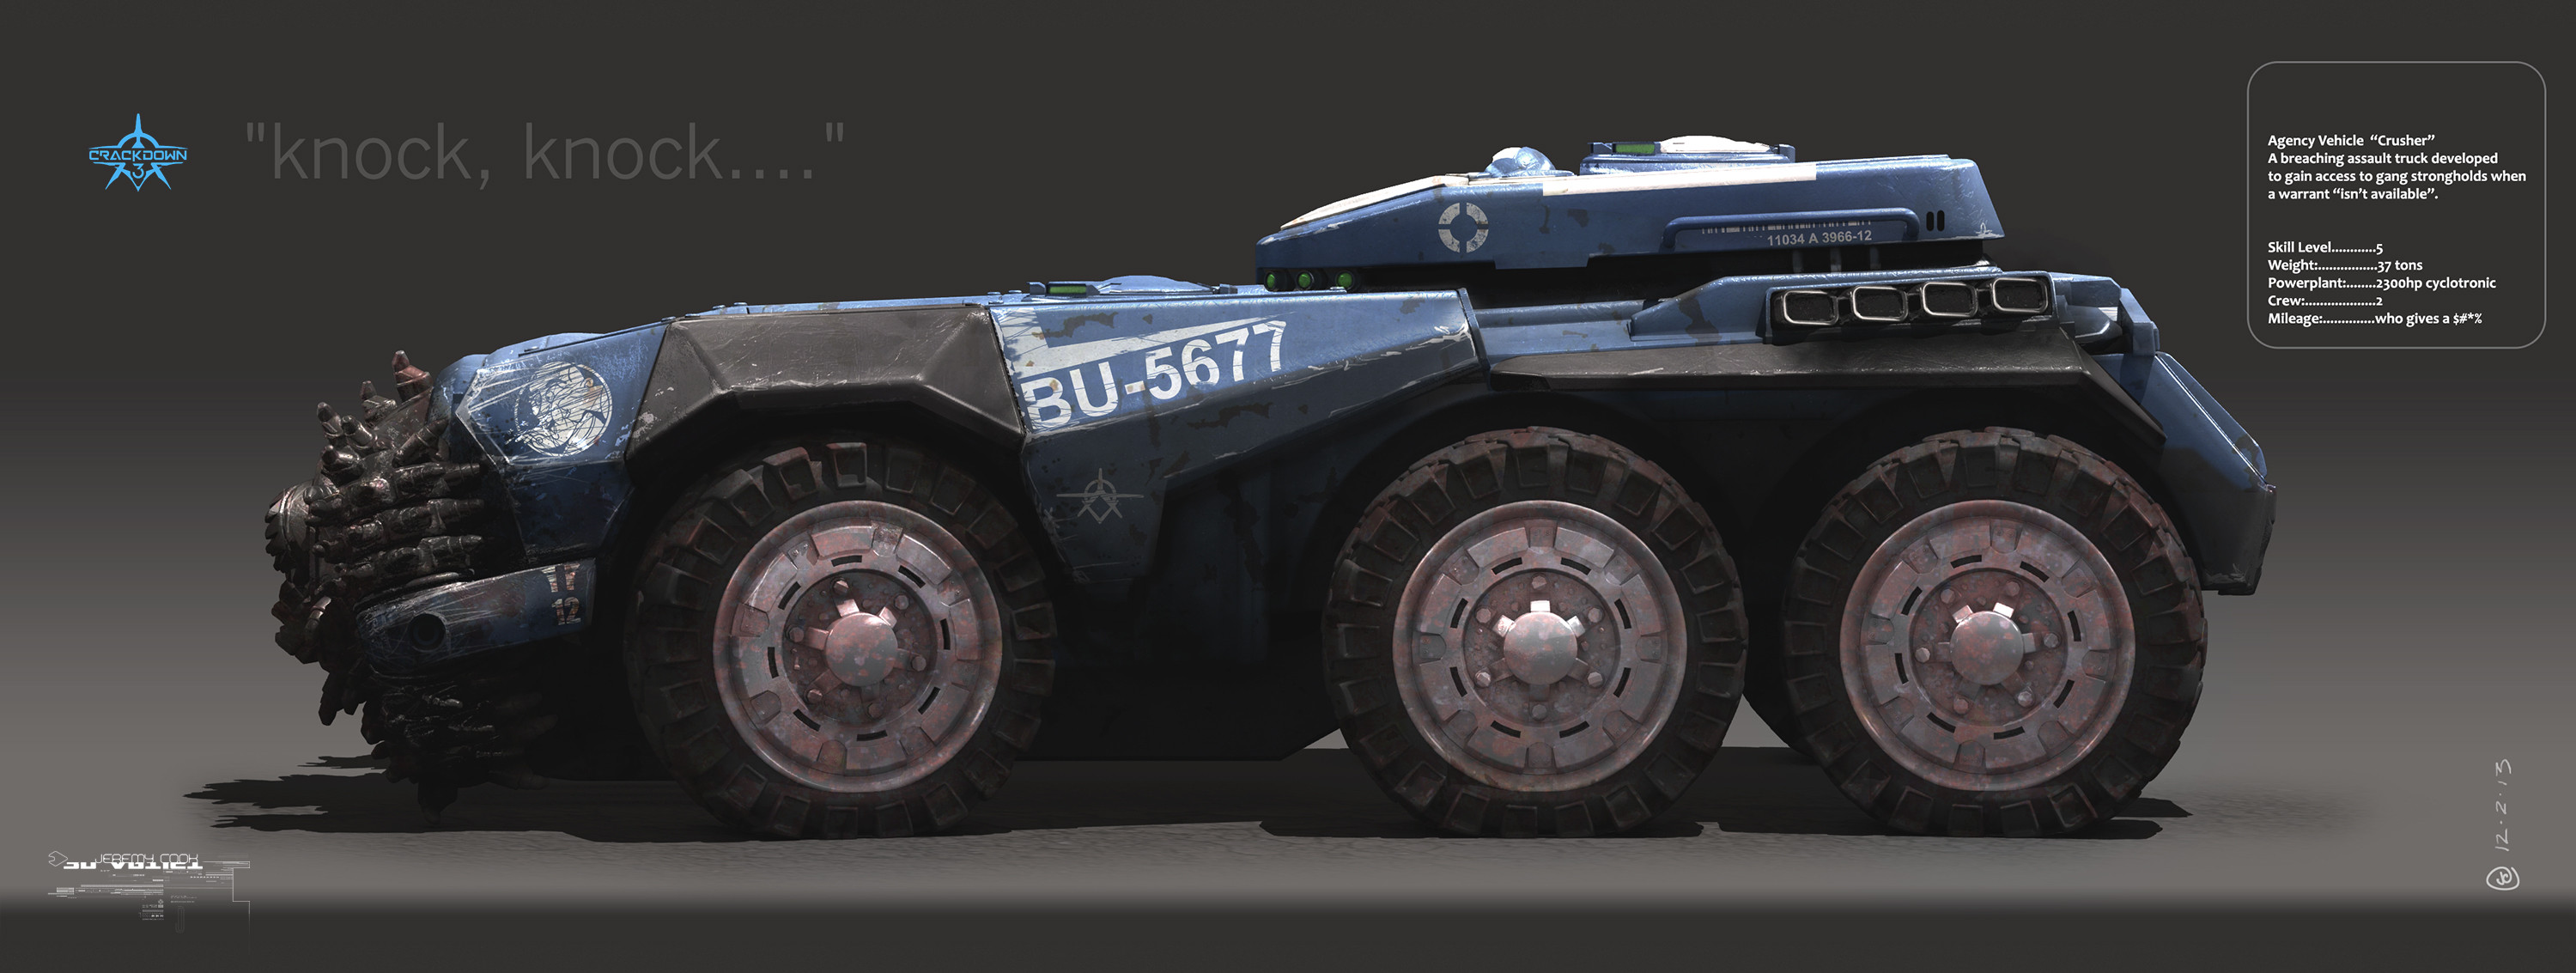 Early Concept for a breaching vehicle